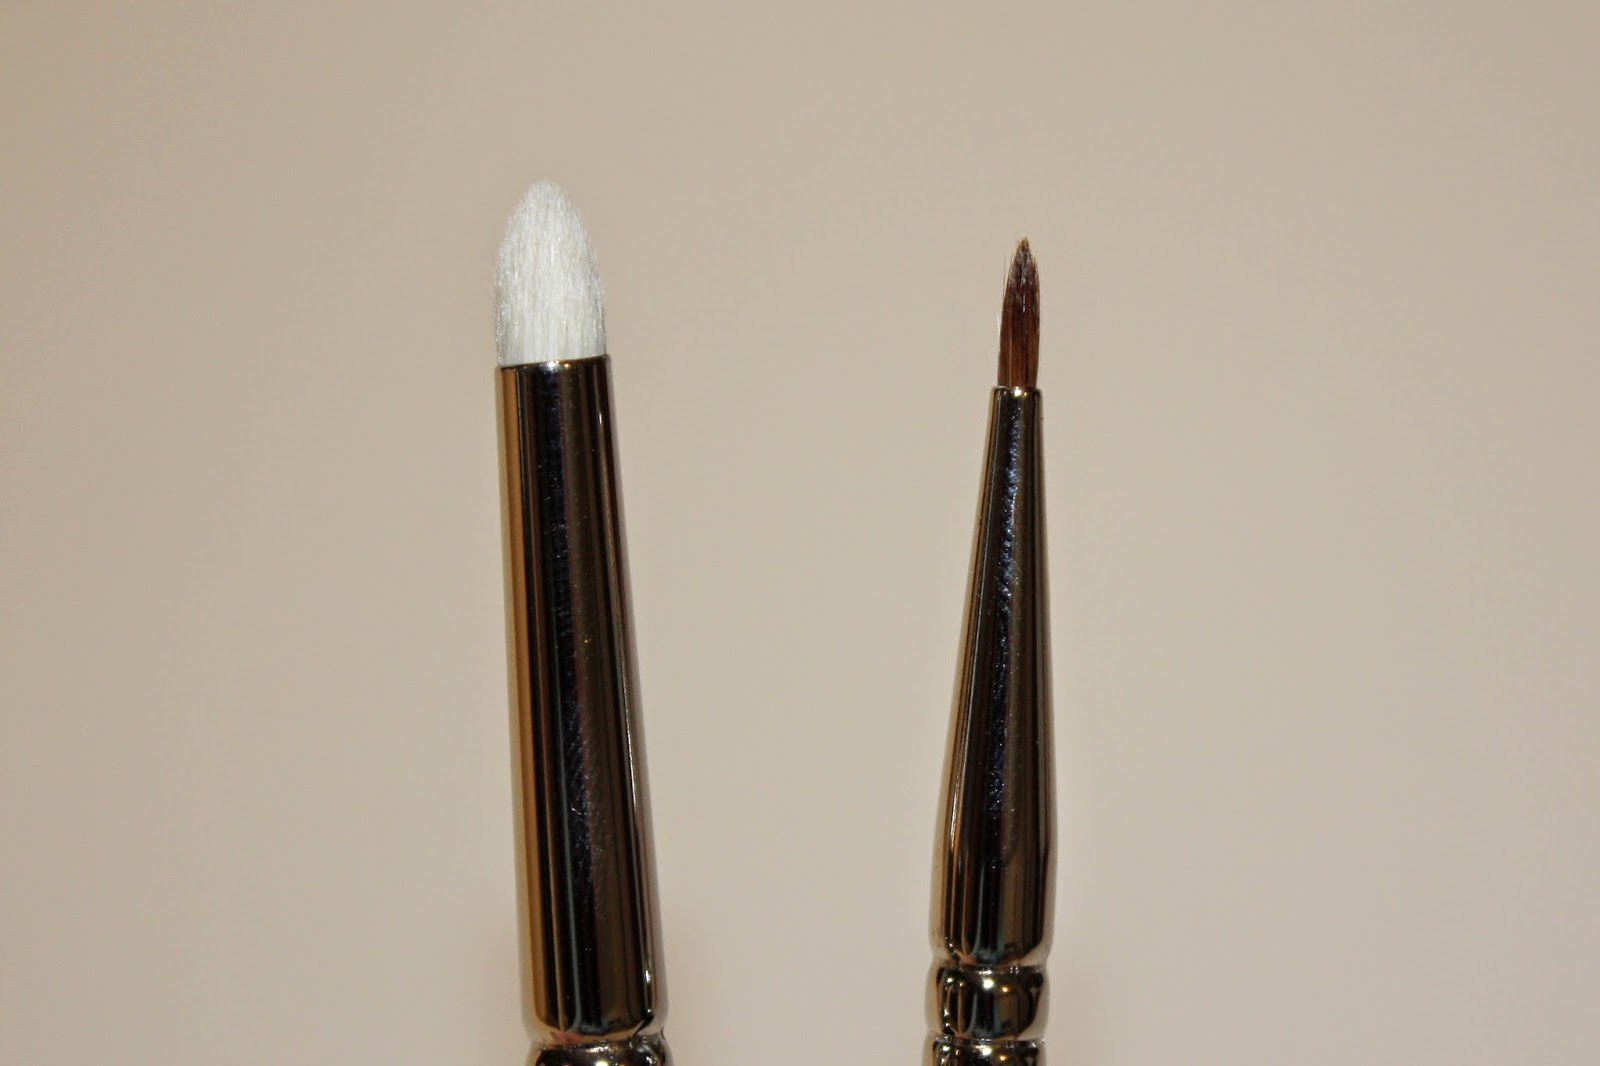 Hakuhodu Eye Brushes in J007 and H2889